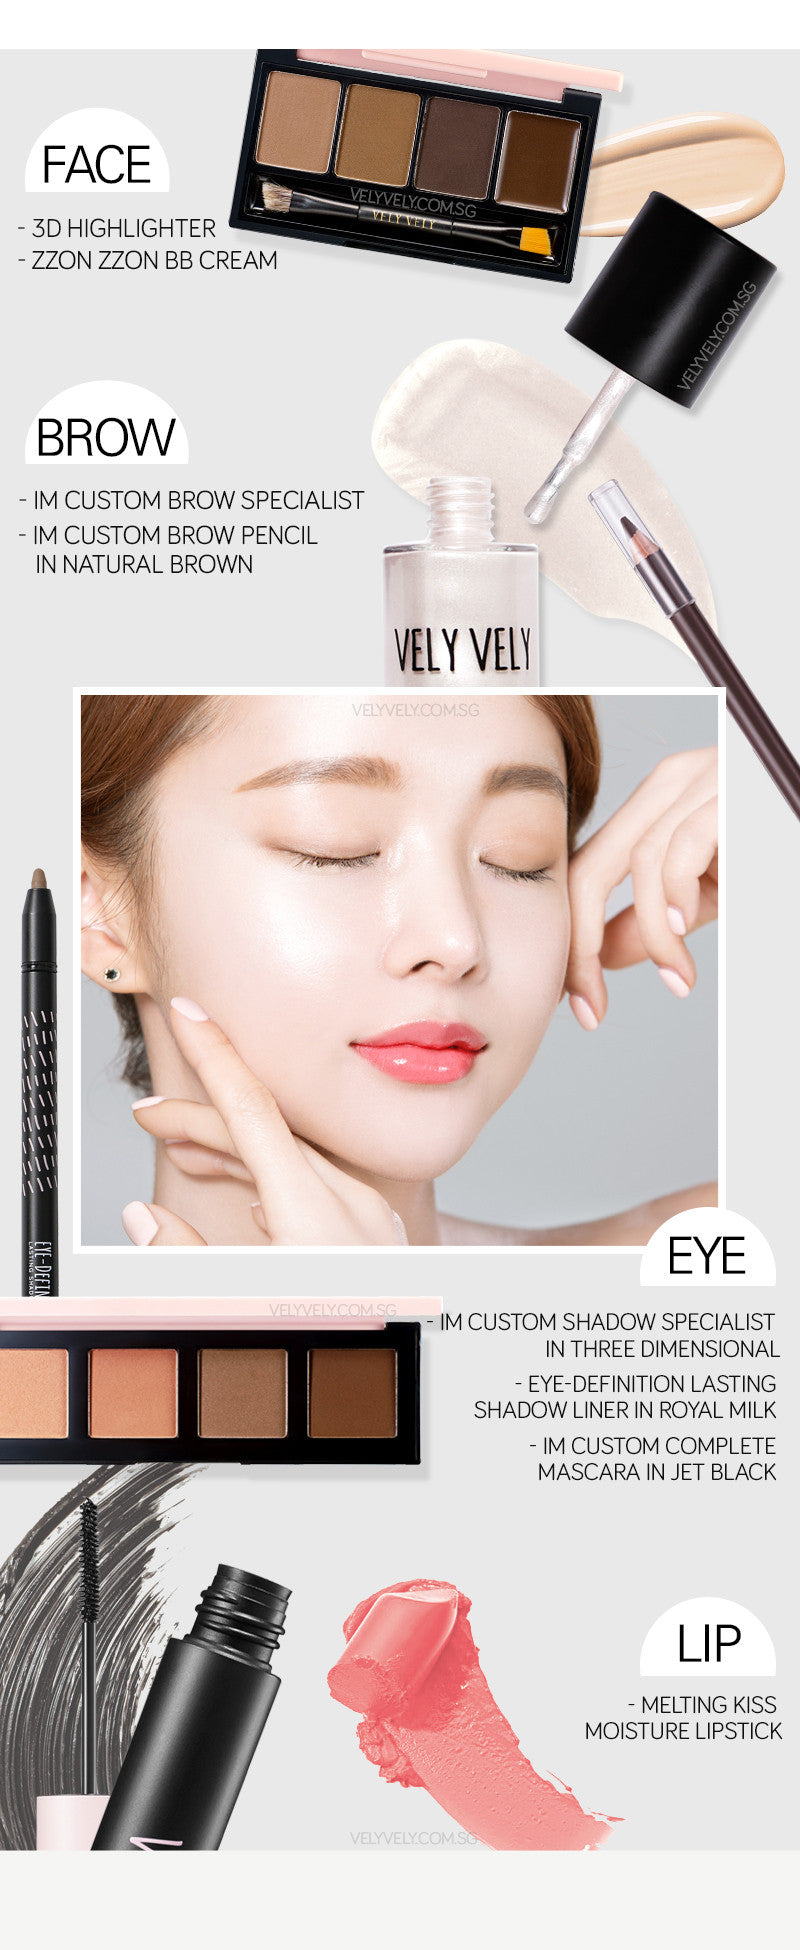 Get the makeup look with Vely vely's makeup products!